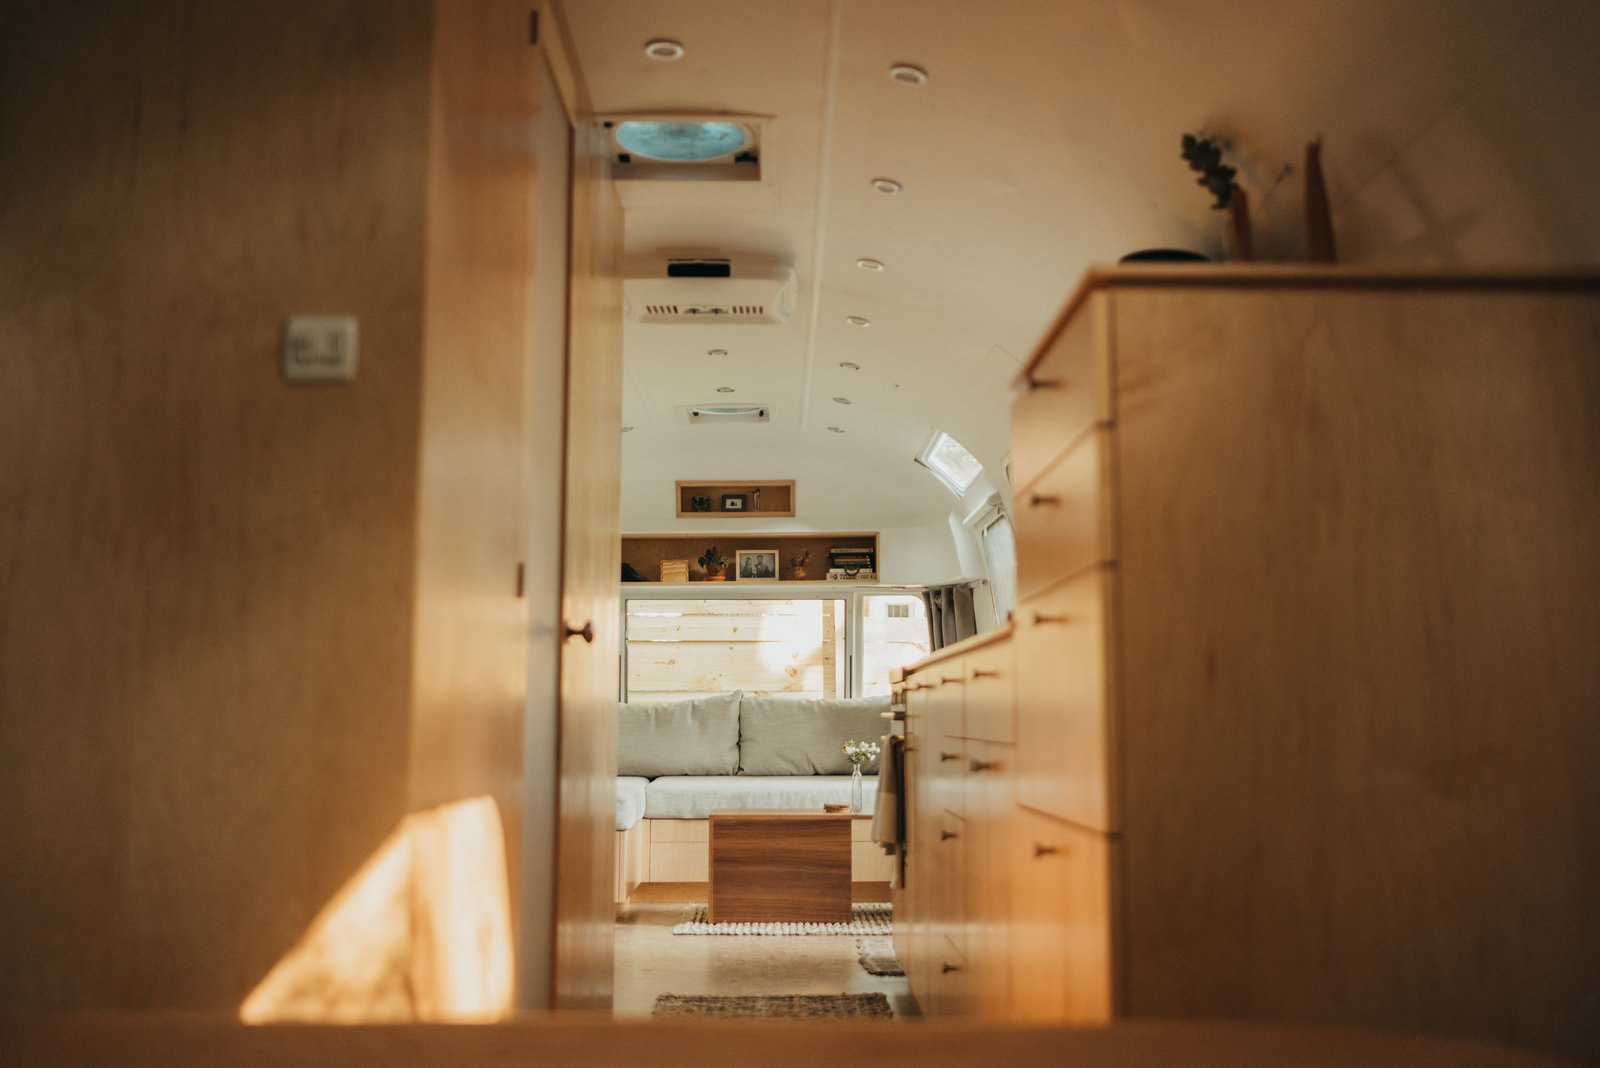 1973 Airstream Remodel interior